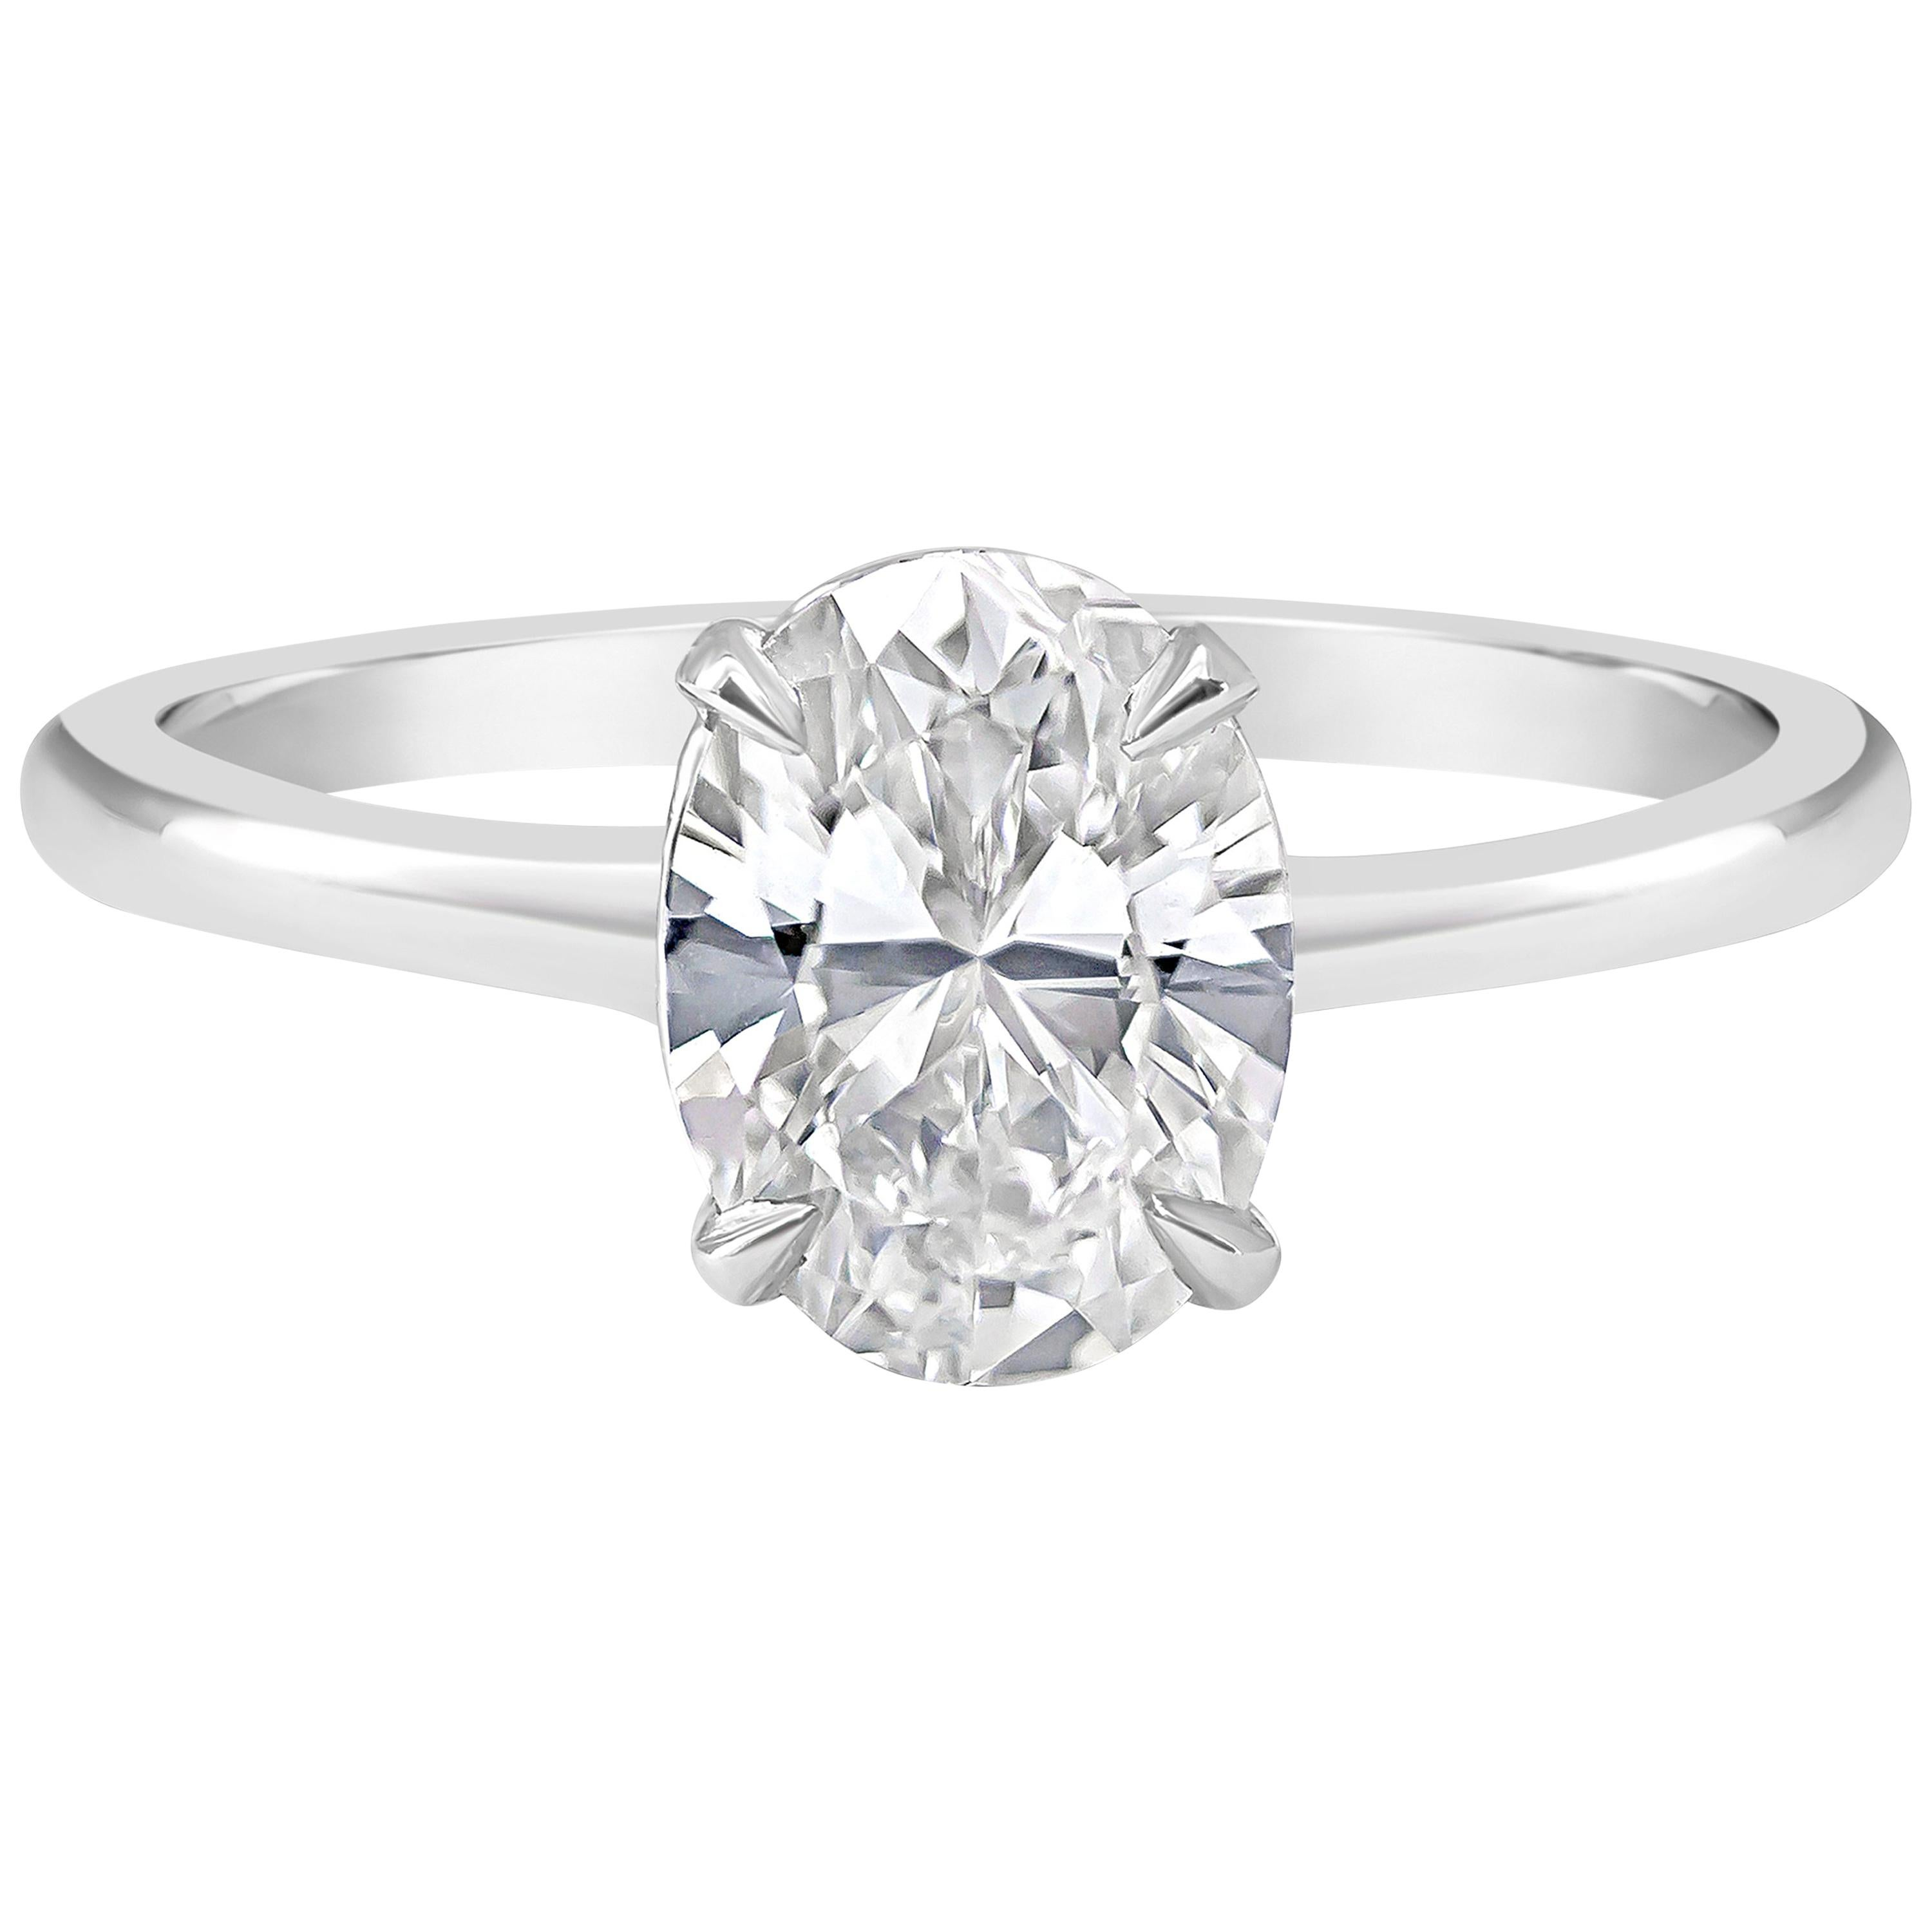 Roman Malakov, GIA Certified Oval Cut Diamond Solitaire Engagement Ring